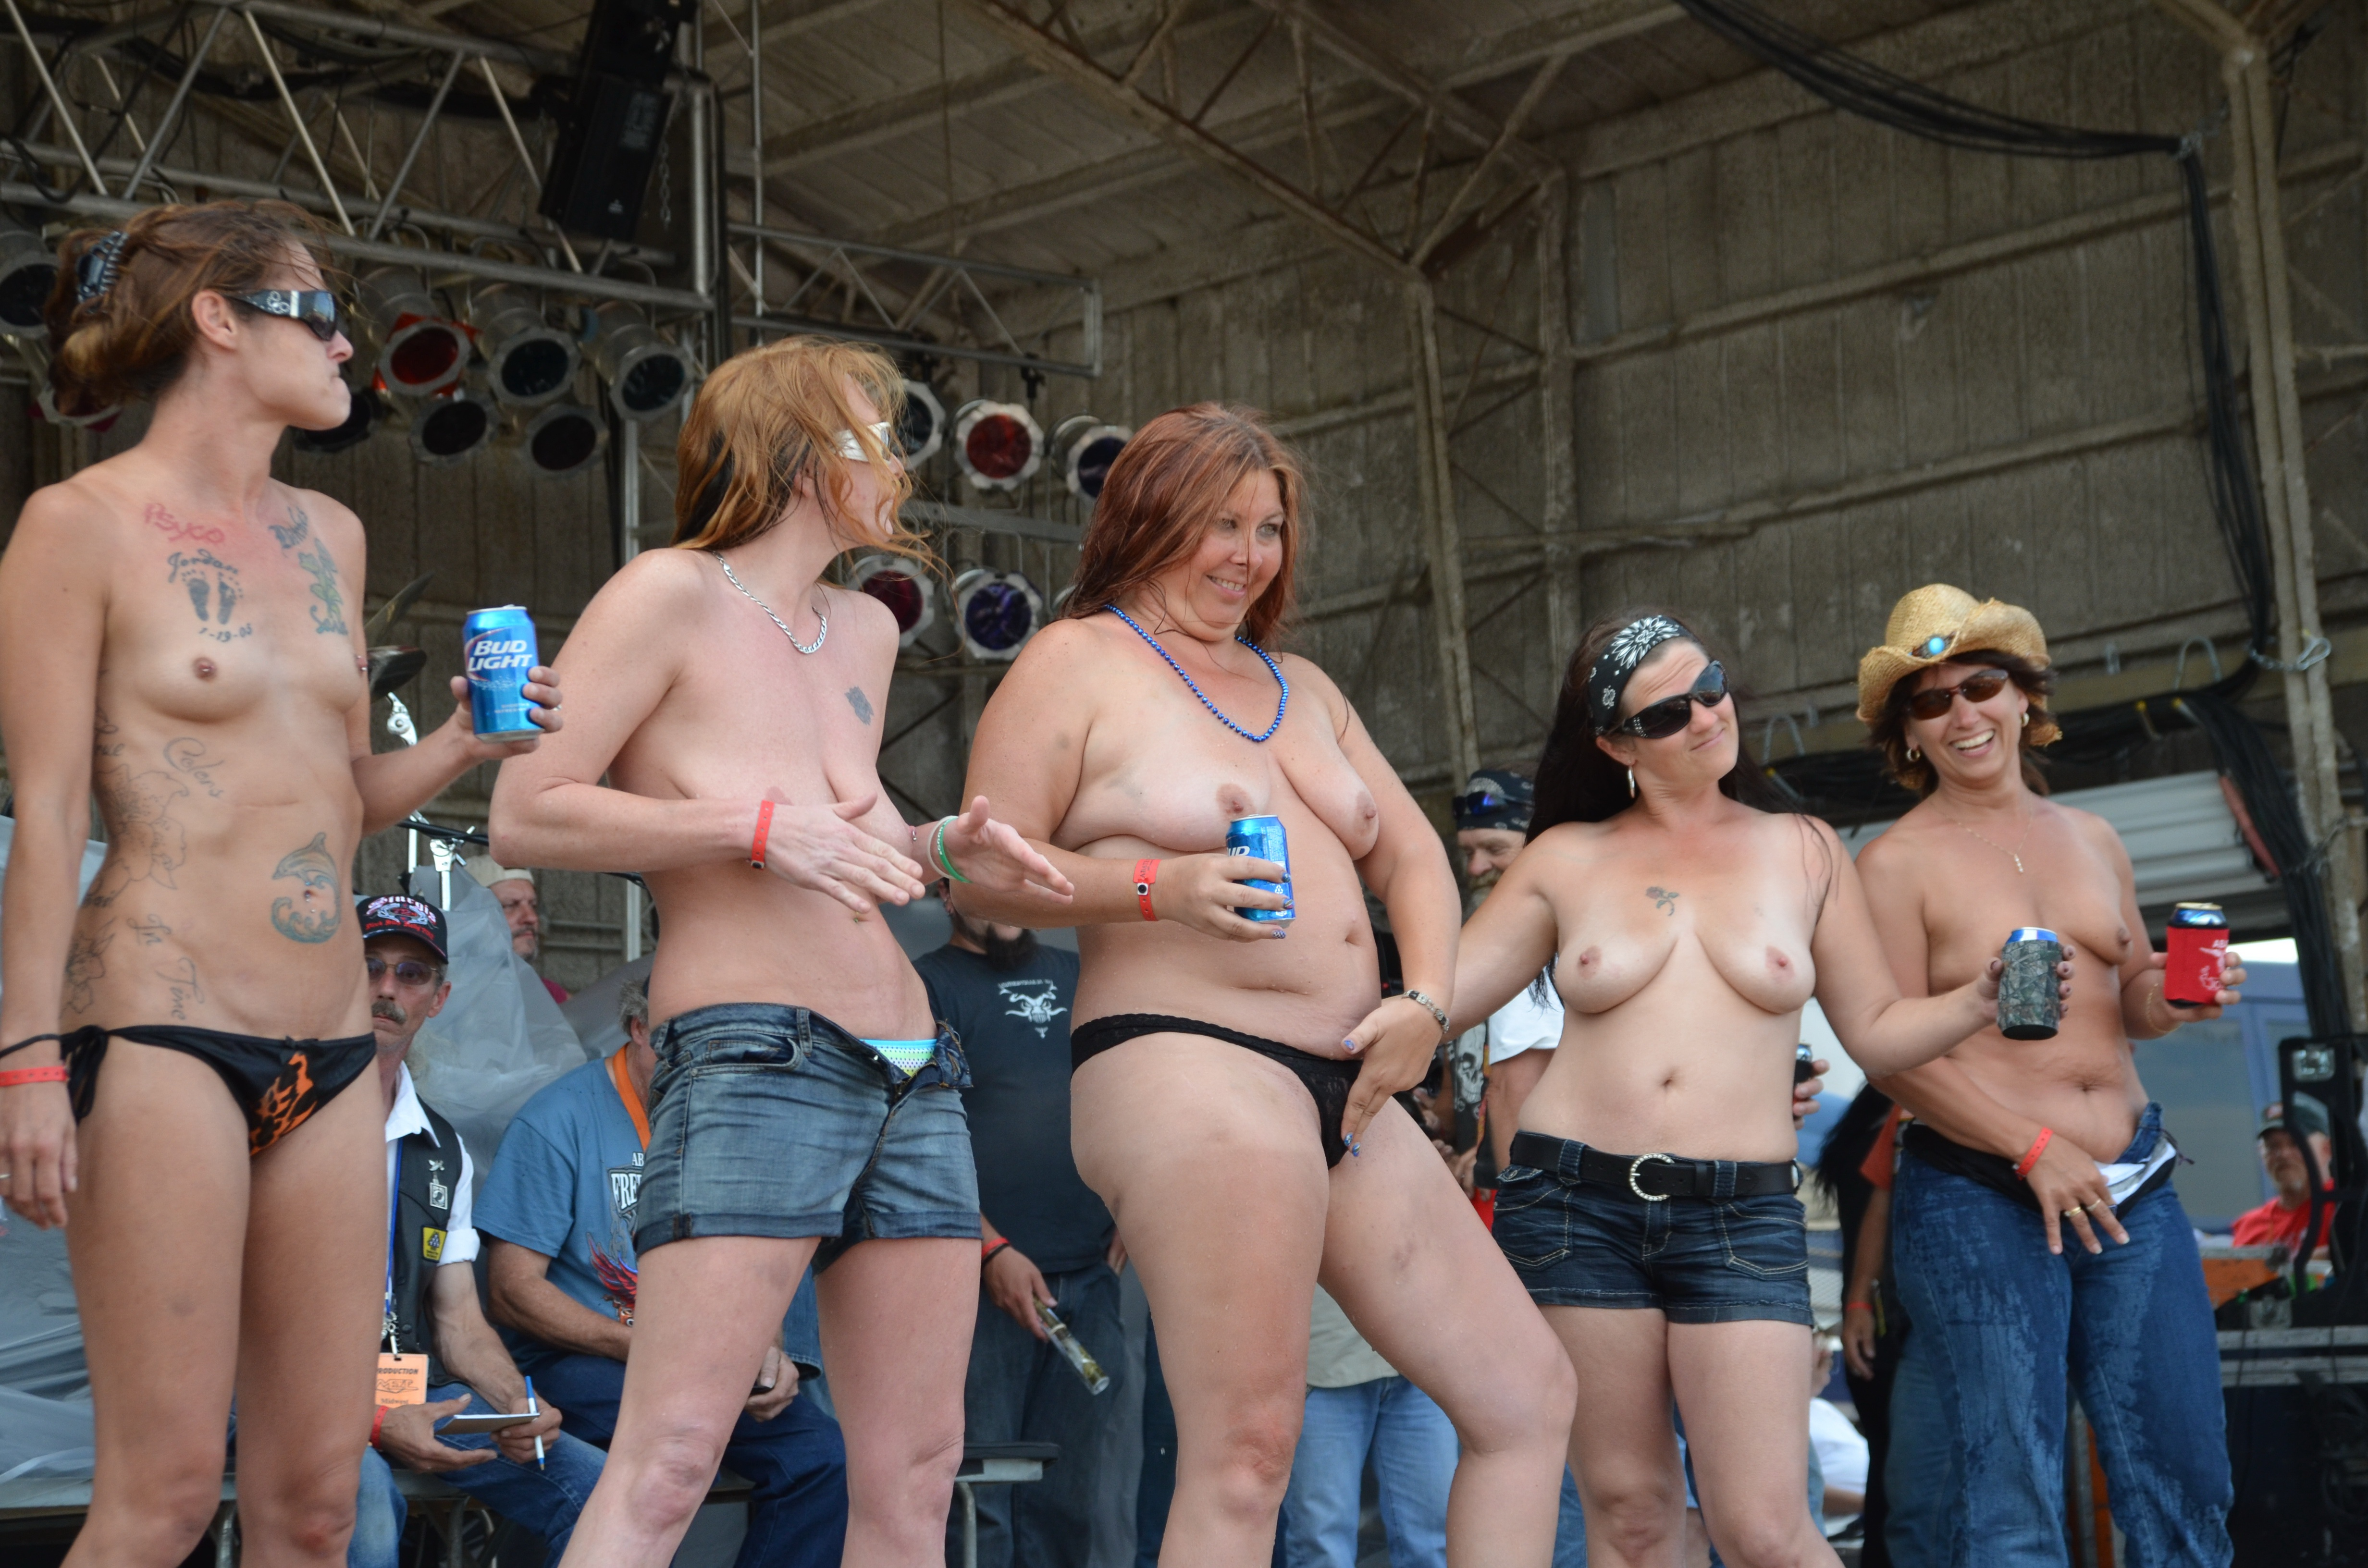 image Real hot rally coeds at the public fest goes naked